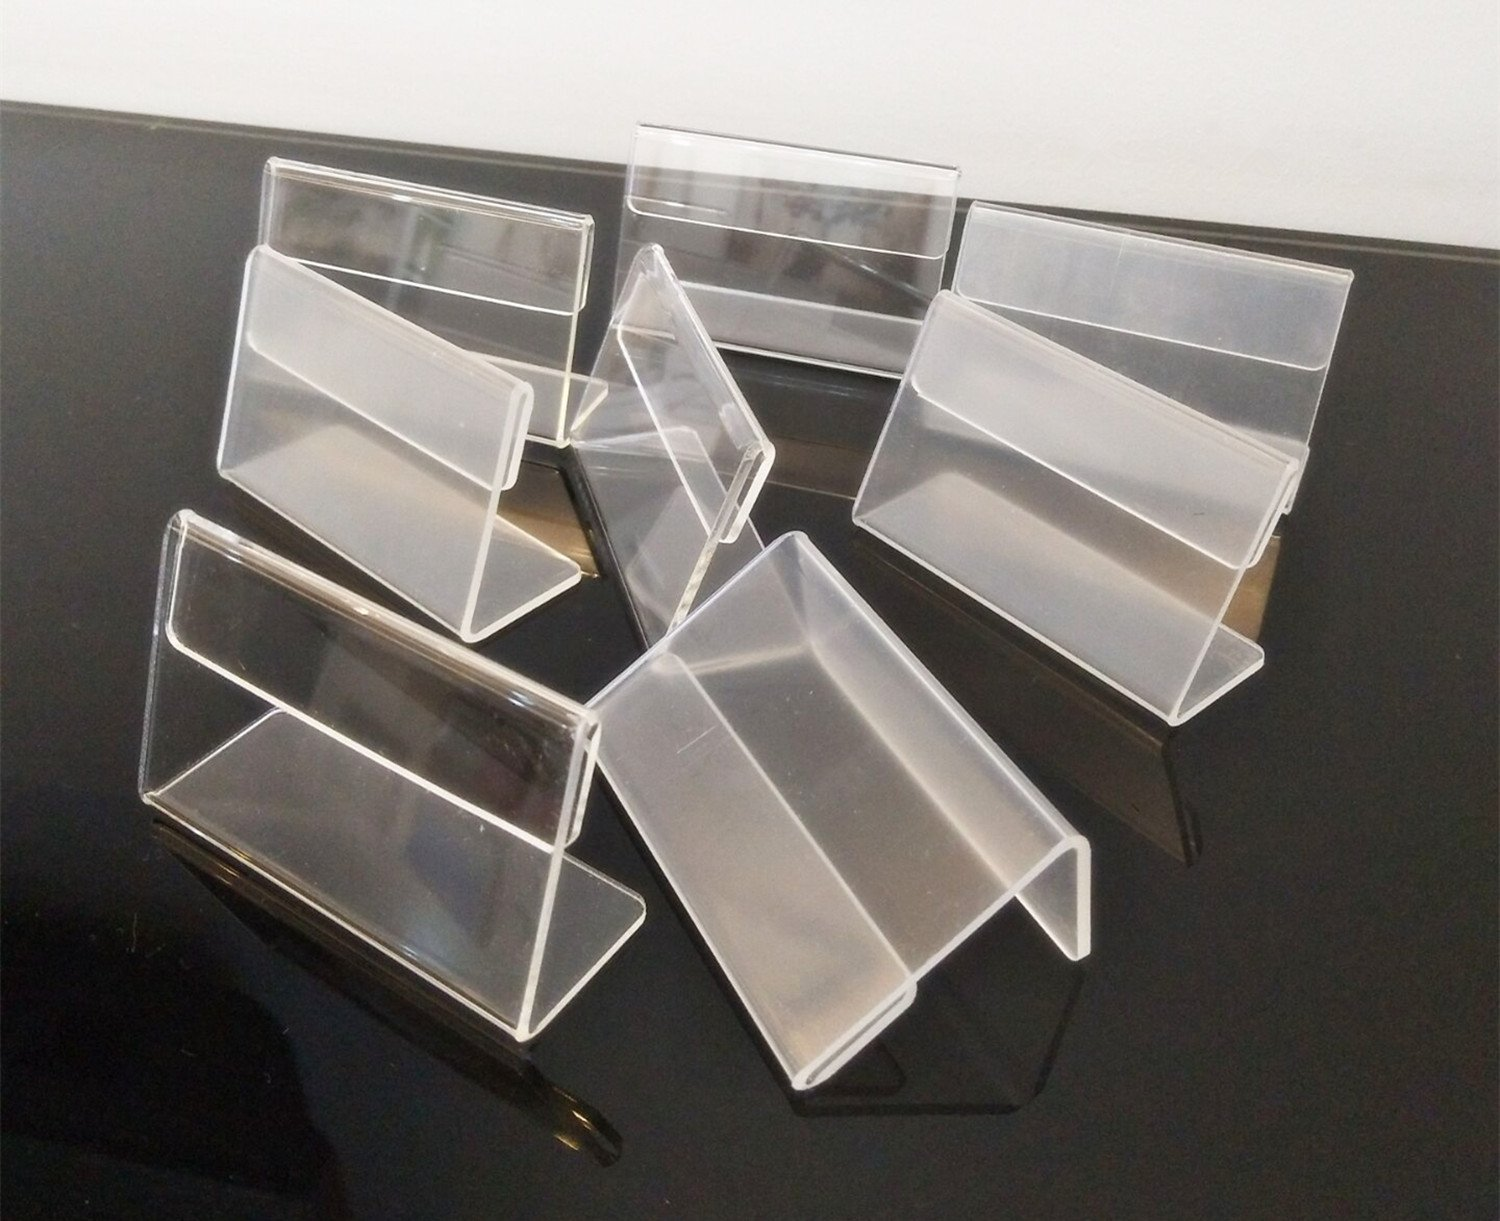 Set of 30PCS L Shape Clear Acrylic Price Card Tag Label Stand , Mini Sign Display Holder,Counter Top Stand 7x4cm MEYA